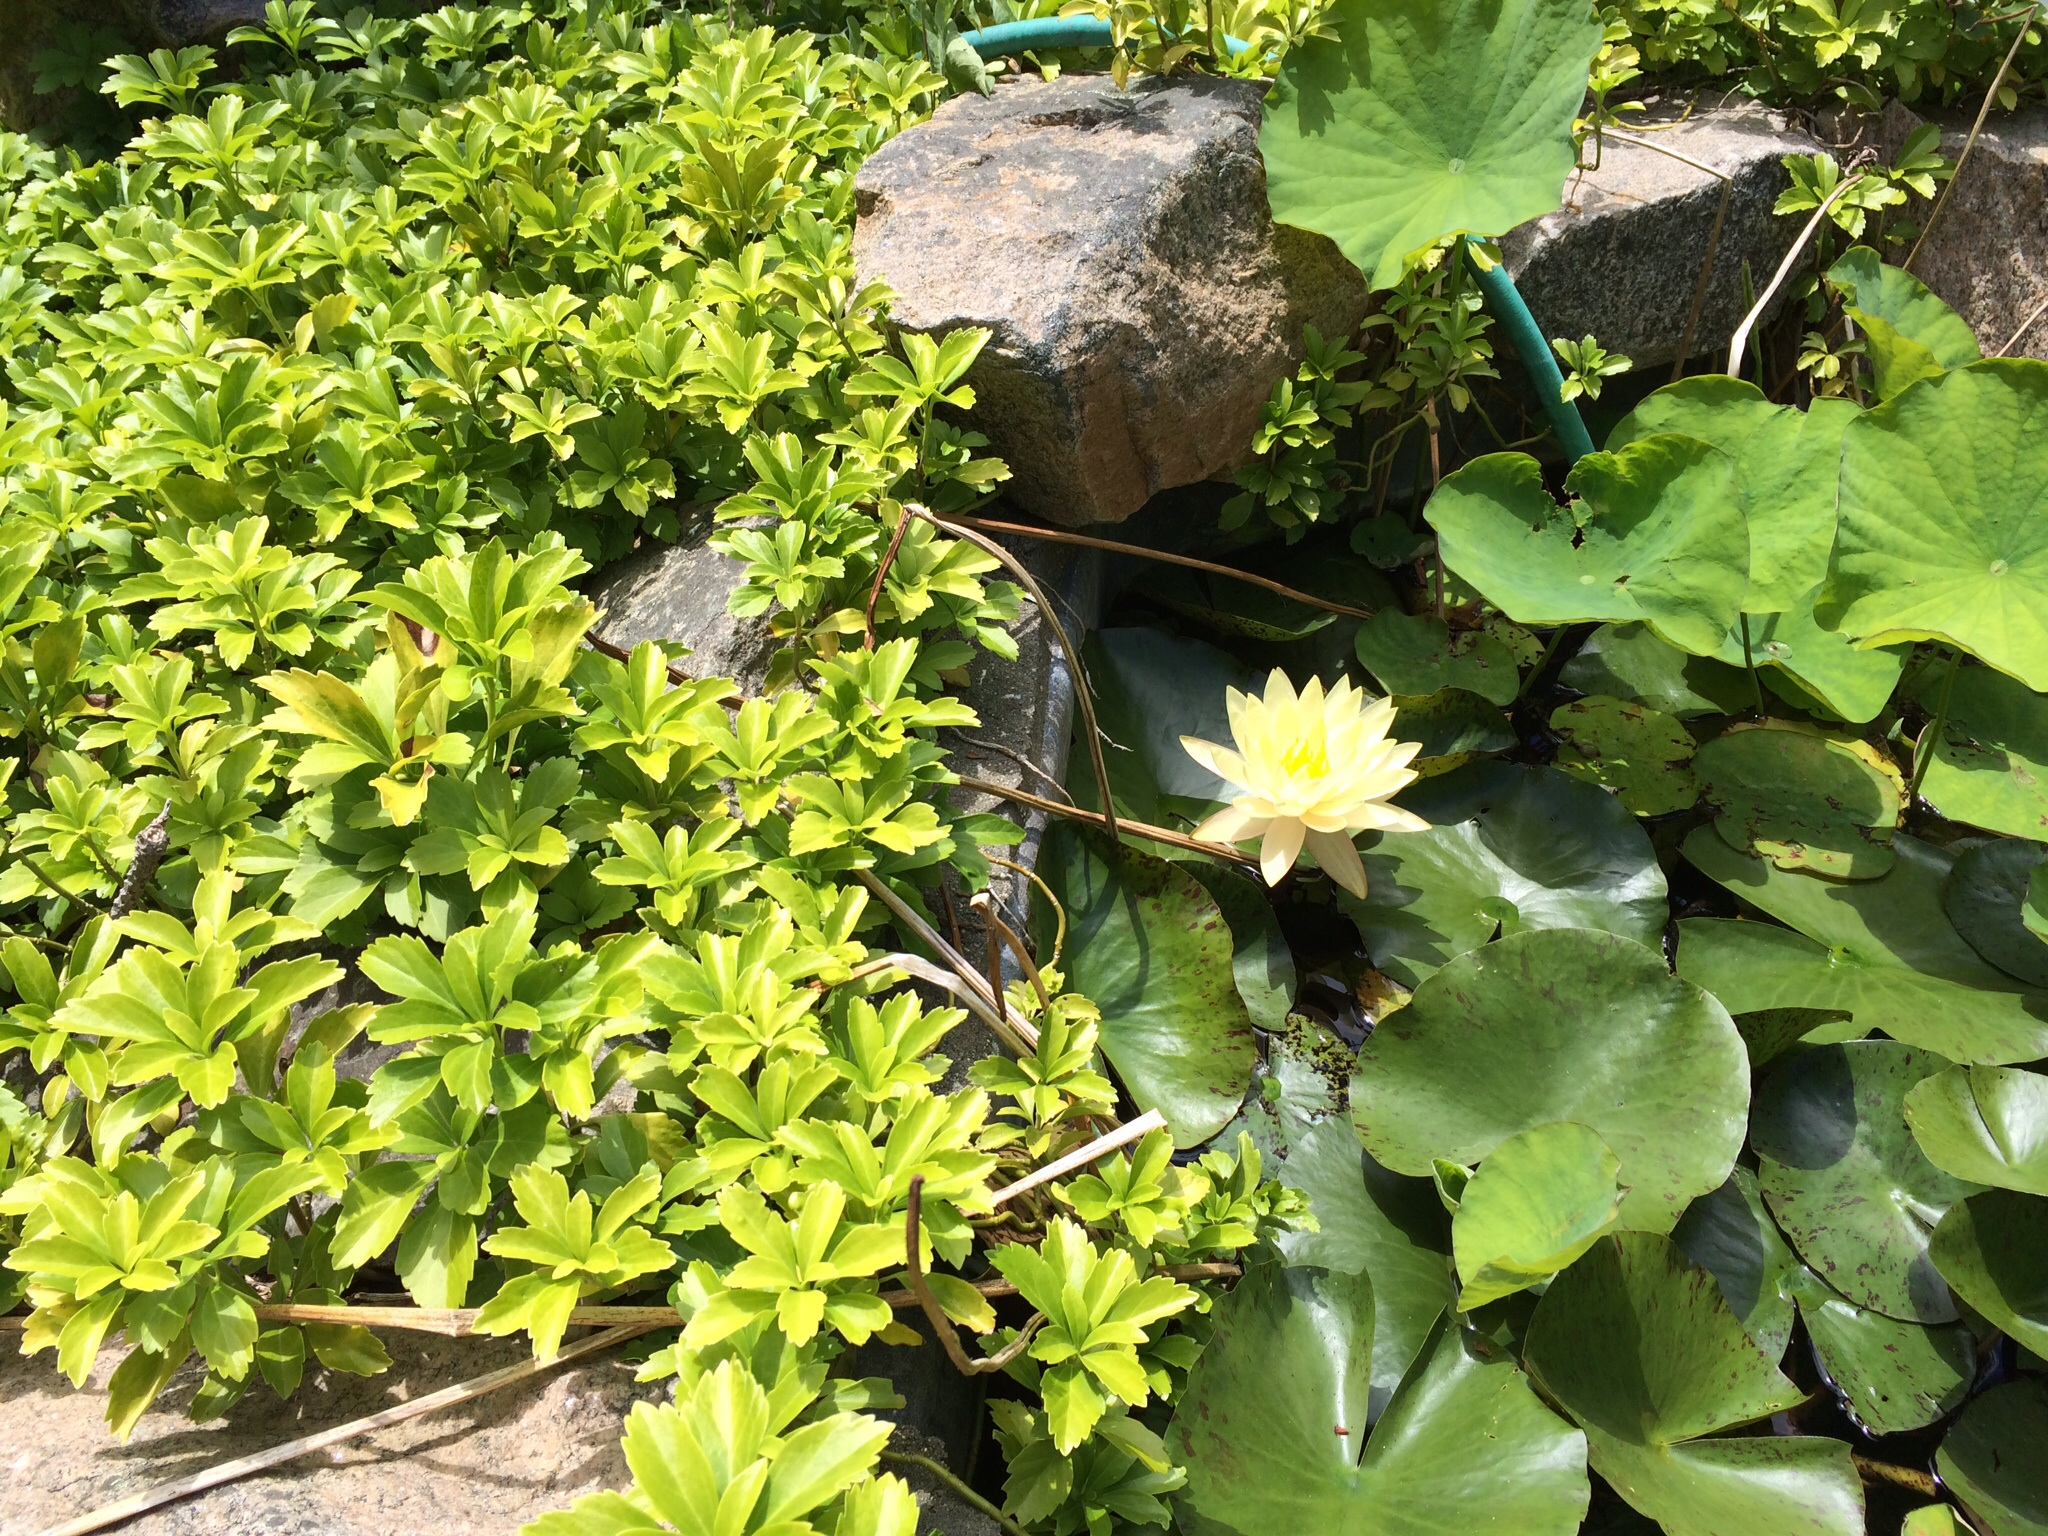 A waterlily in the Koi pond